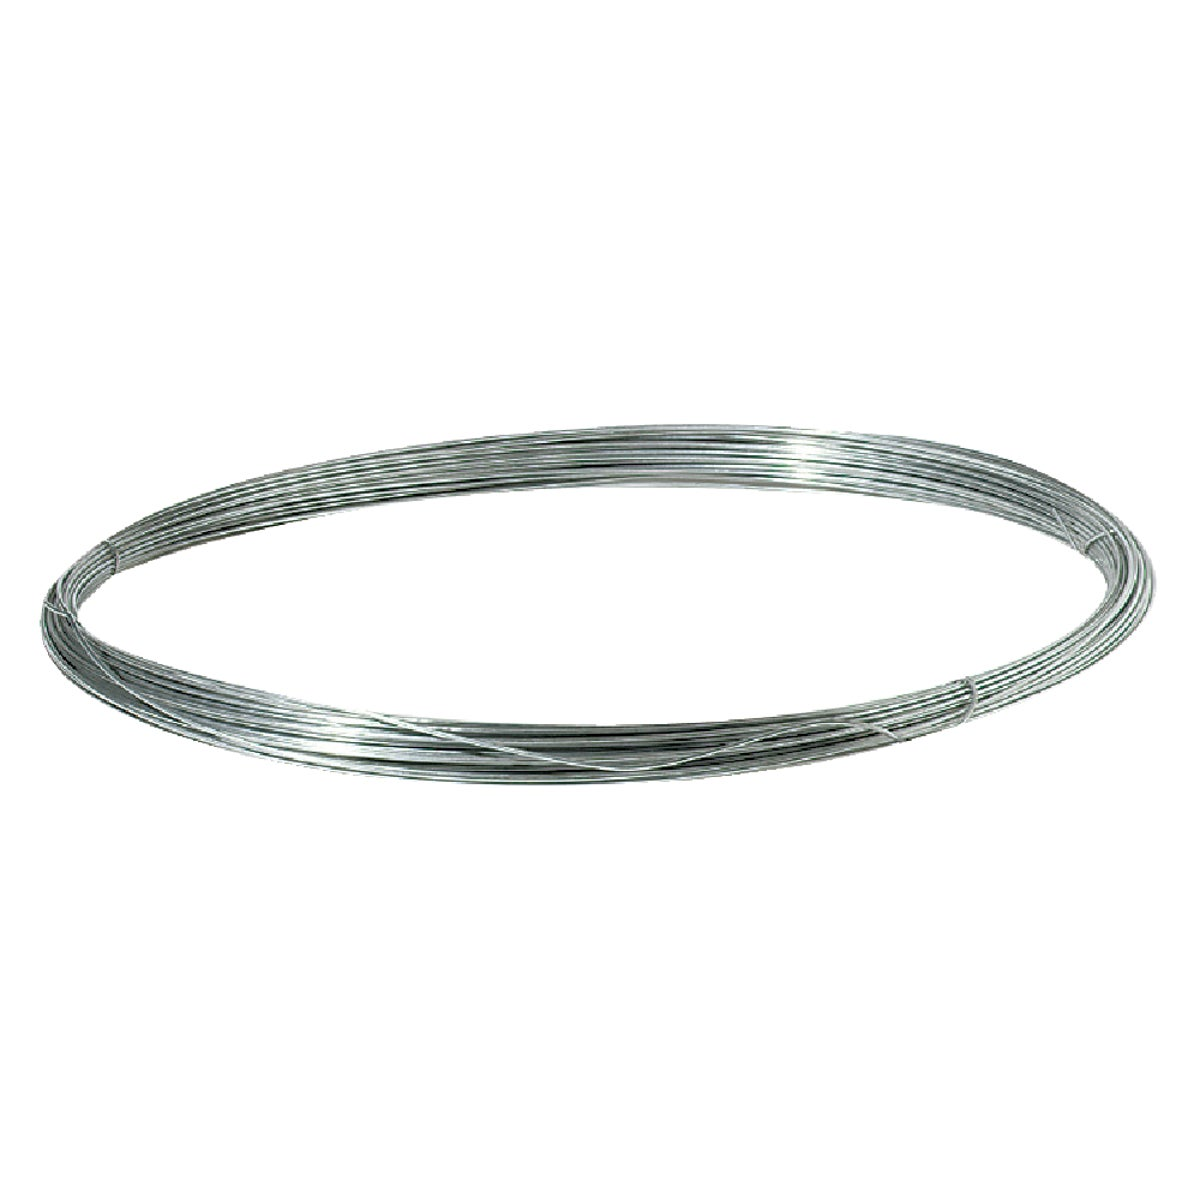 11GA 10# GALV SMTH WIRE - SWG1110 by Primesource